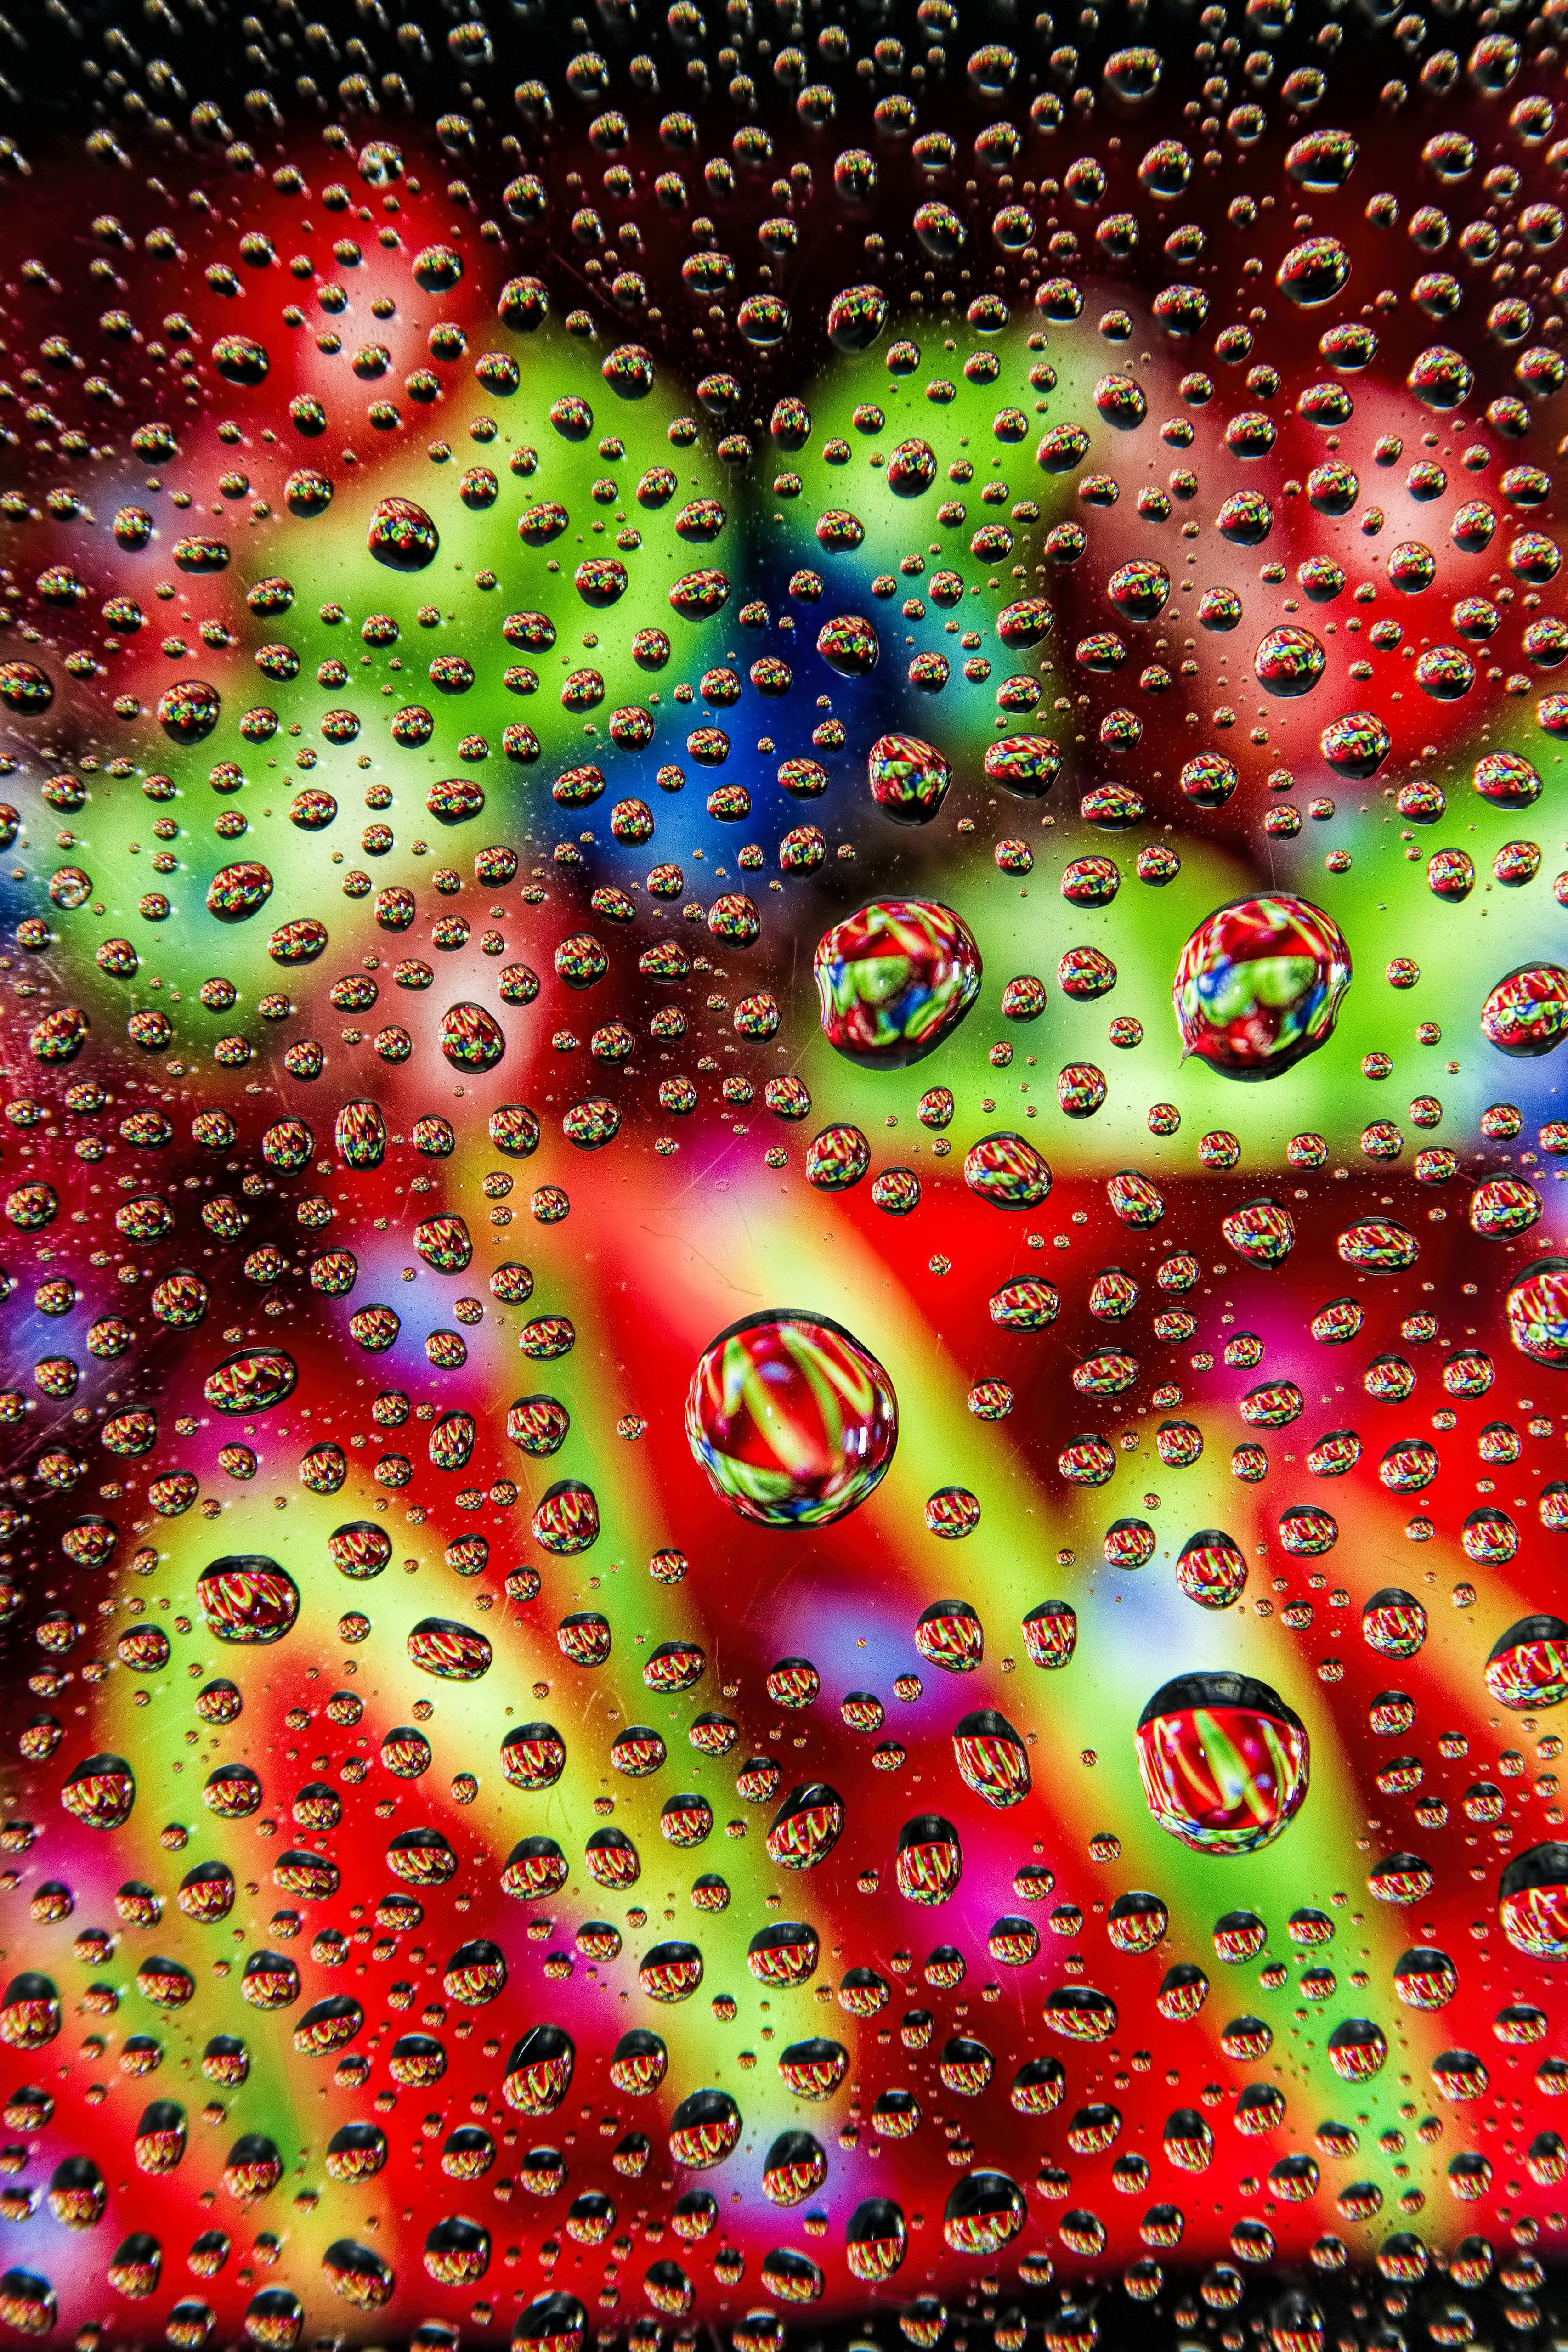 71783 free wallpaper 240x320 for phone, download images Abstract, Drops, Reflection, Multicolored, Motley, Surface 240x320 for mobile